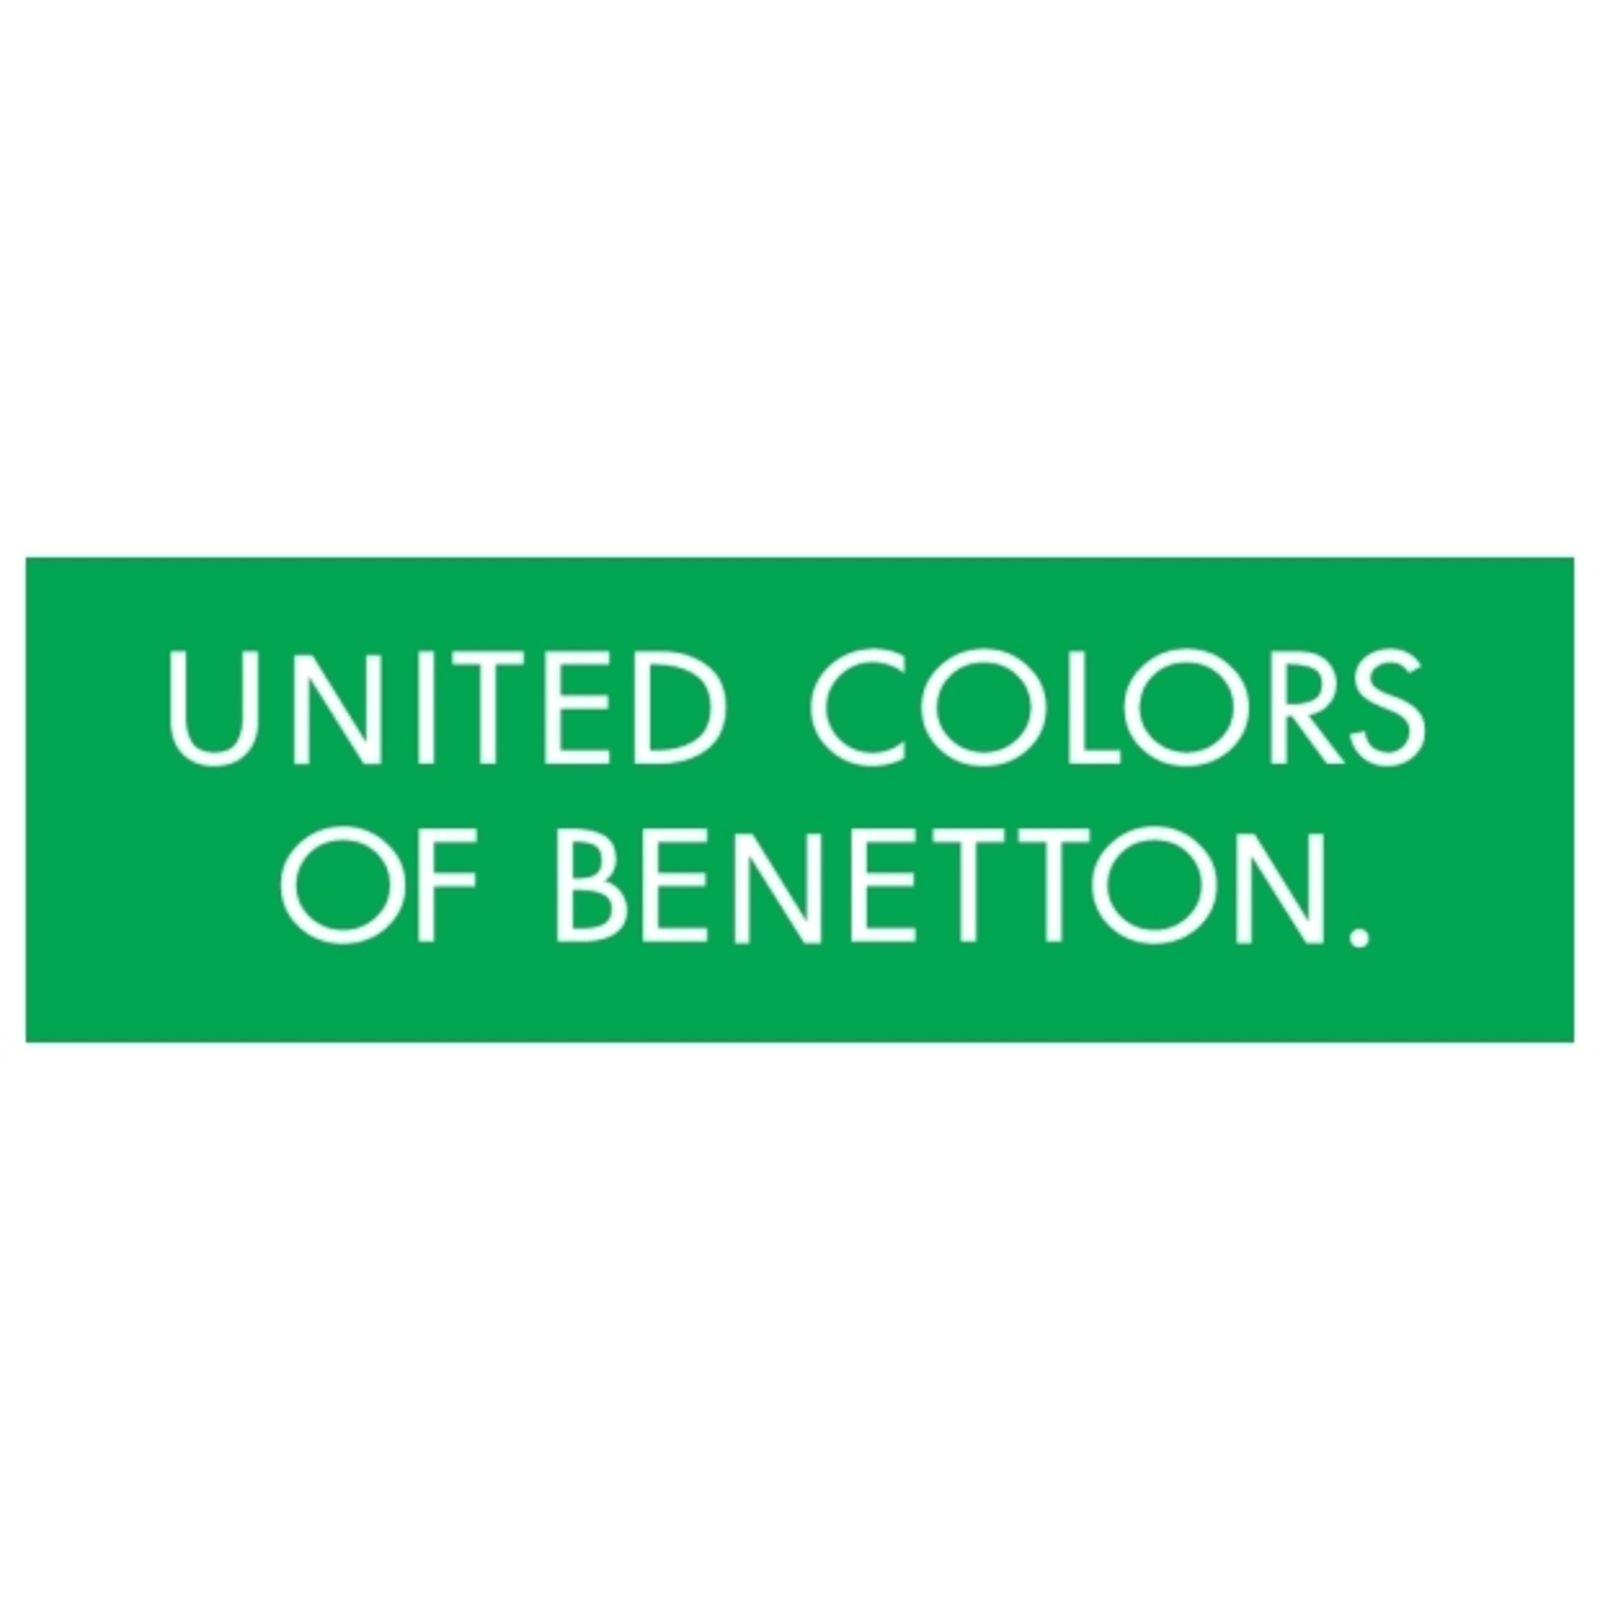 UNDERCOLORS OF BENETTON (Image 1)